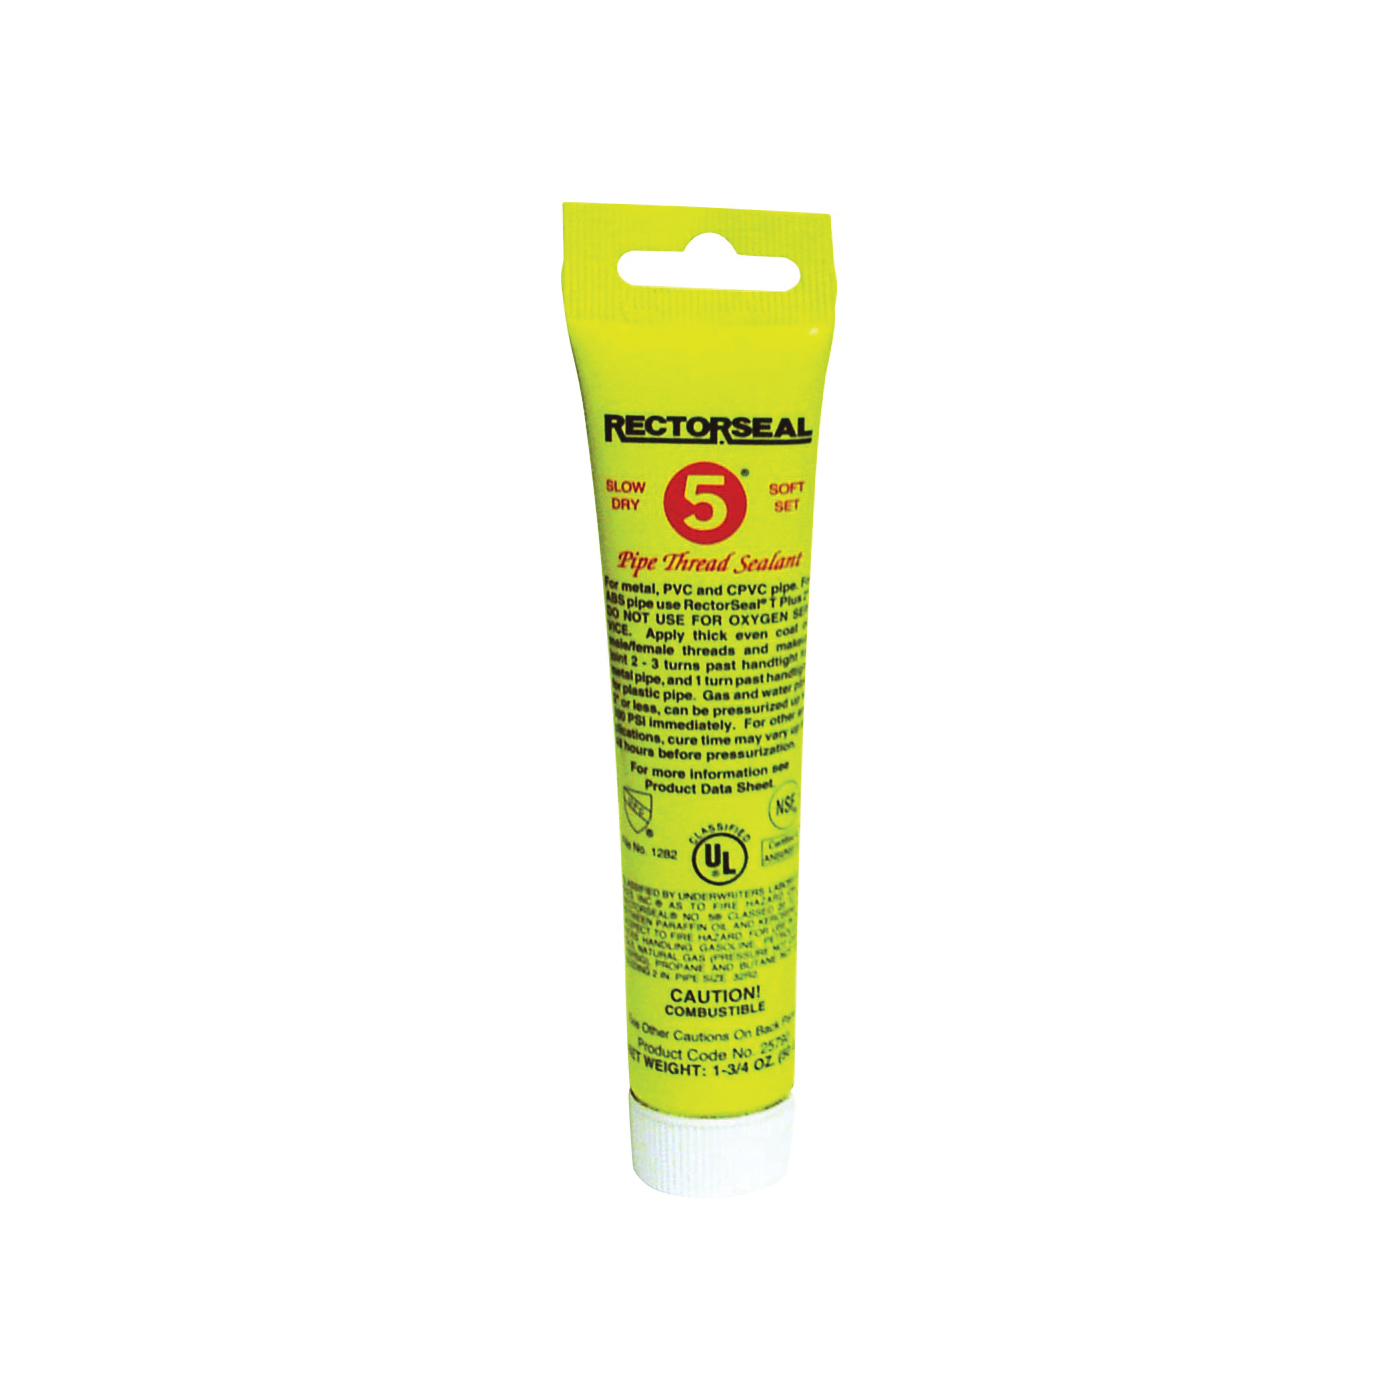 Picture of RECTORSEAL 25790 Thread Sealant, 1.75 oz, Tube, Paste, Yellow